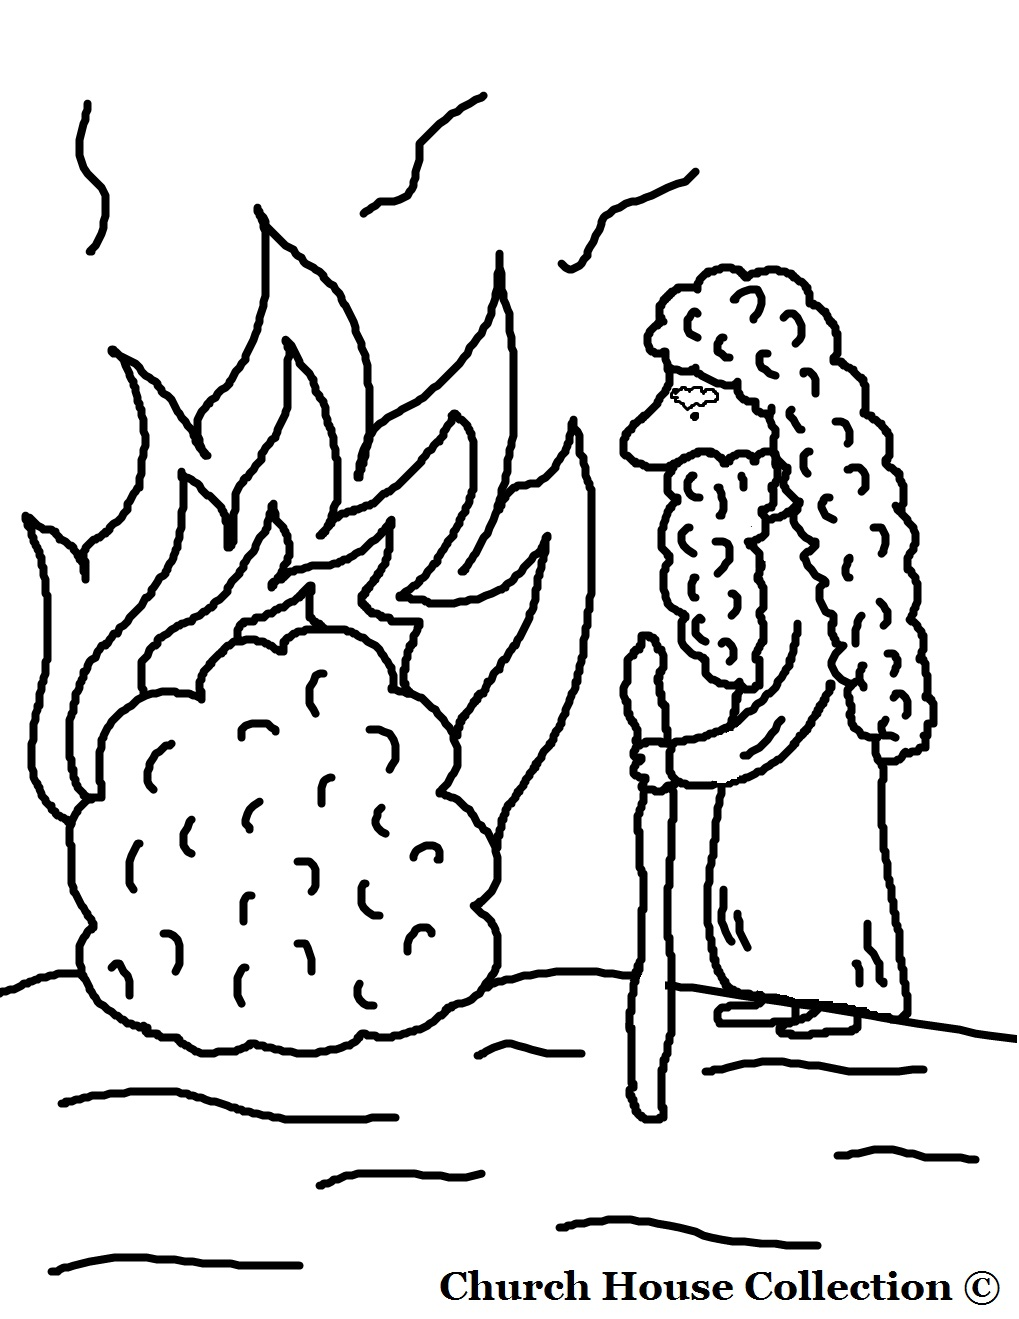 Coloring Pages Moses And The Burning Bush Coloring Pages moses and the burning bush coloring pages page without words